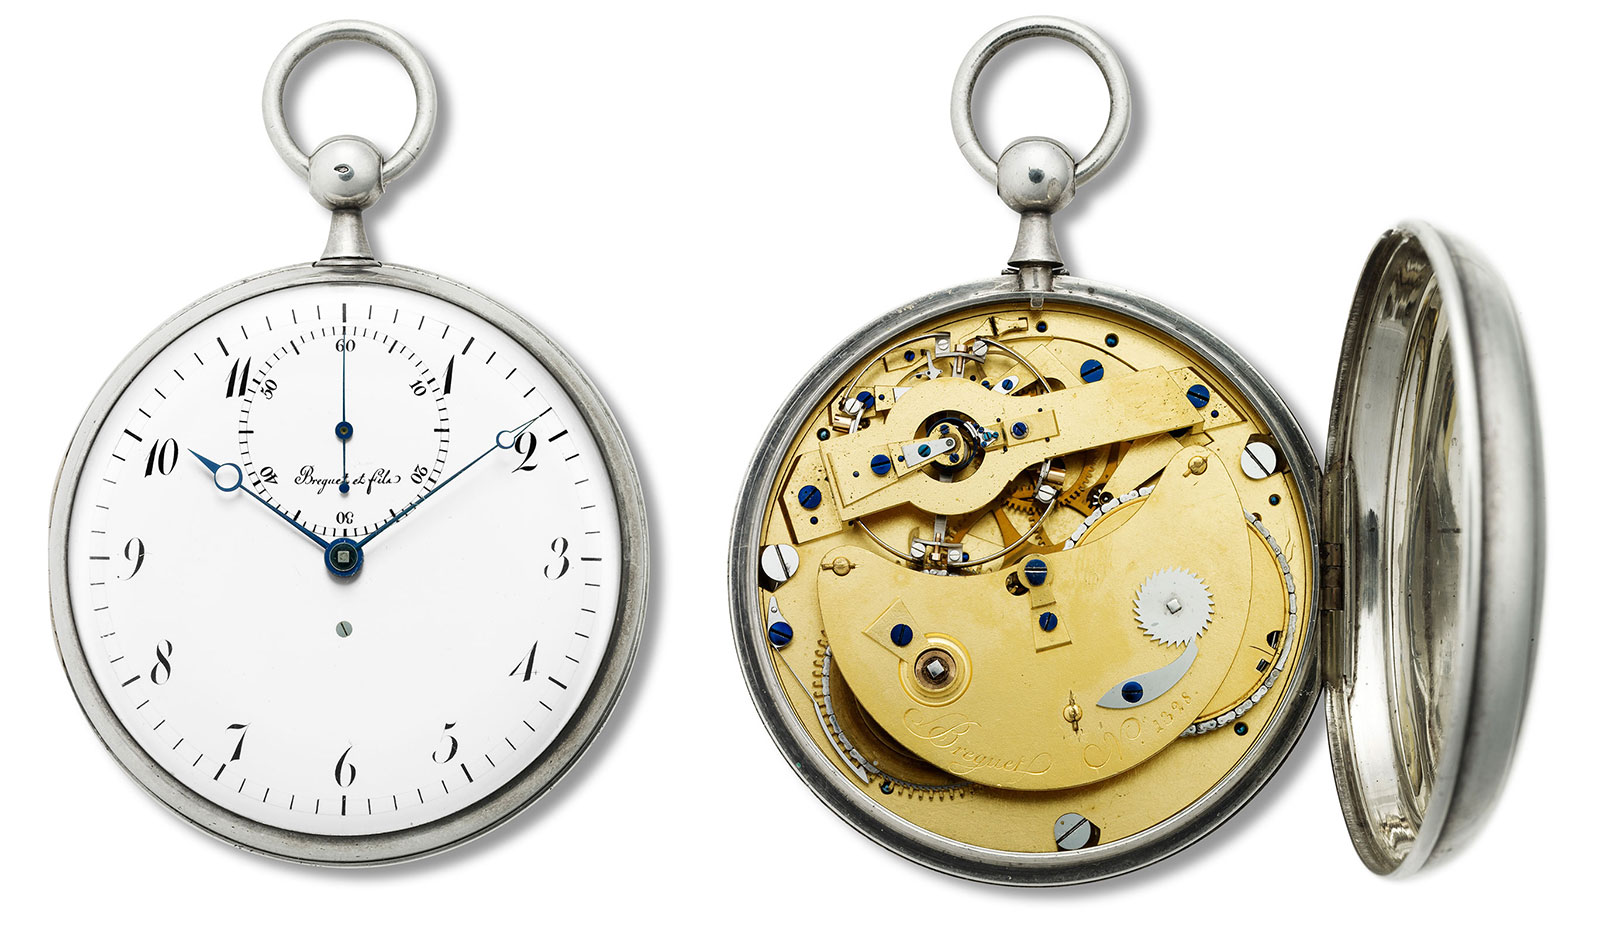 Watches By SJX: Highlights From the Largest Ever Breguet ...